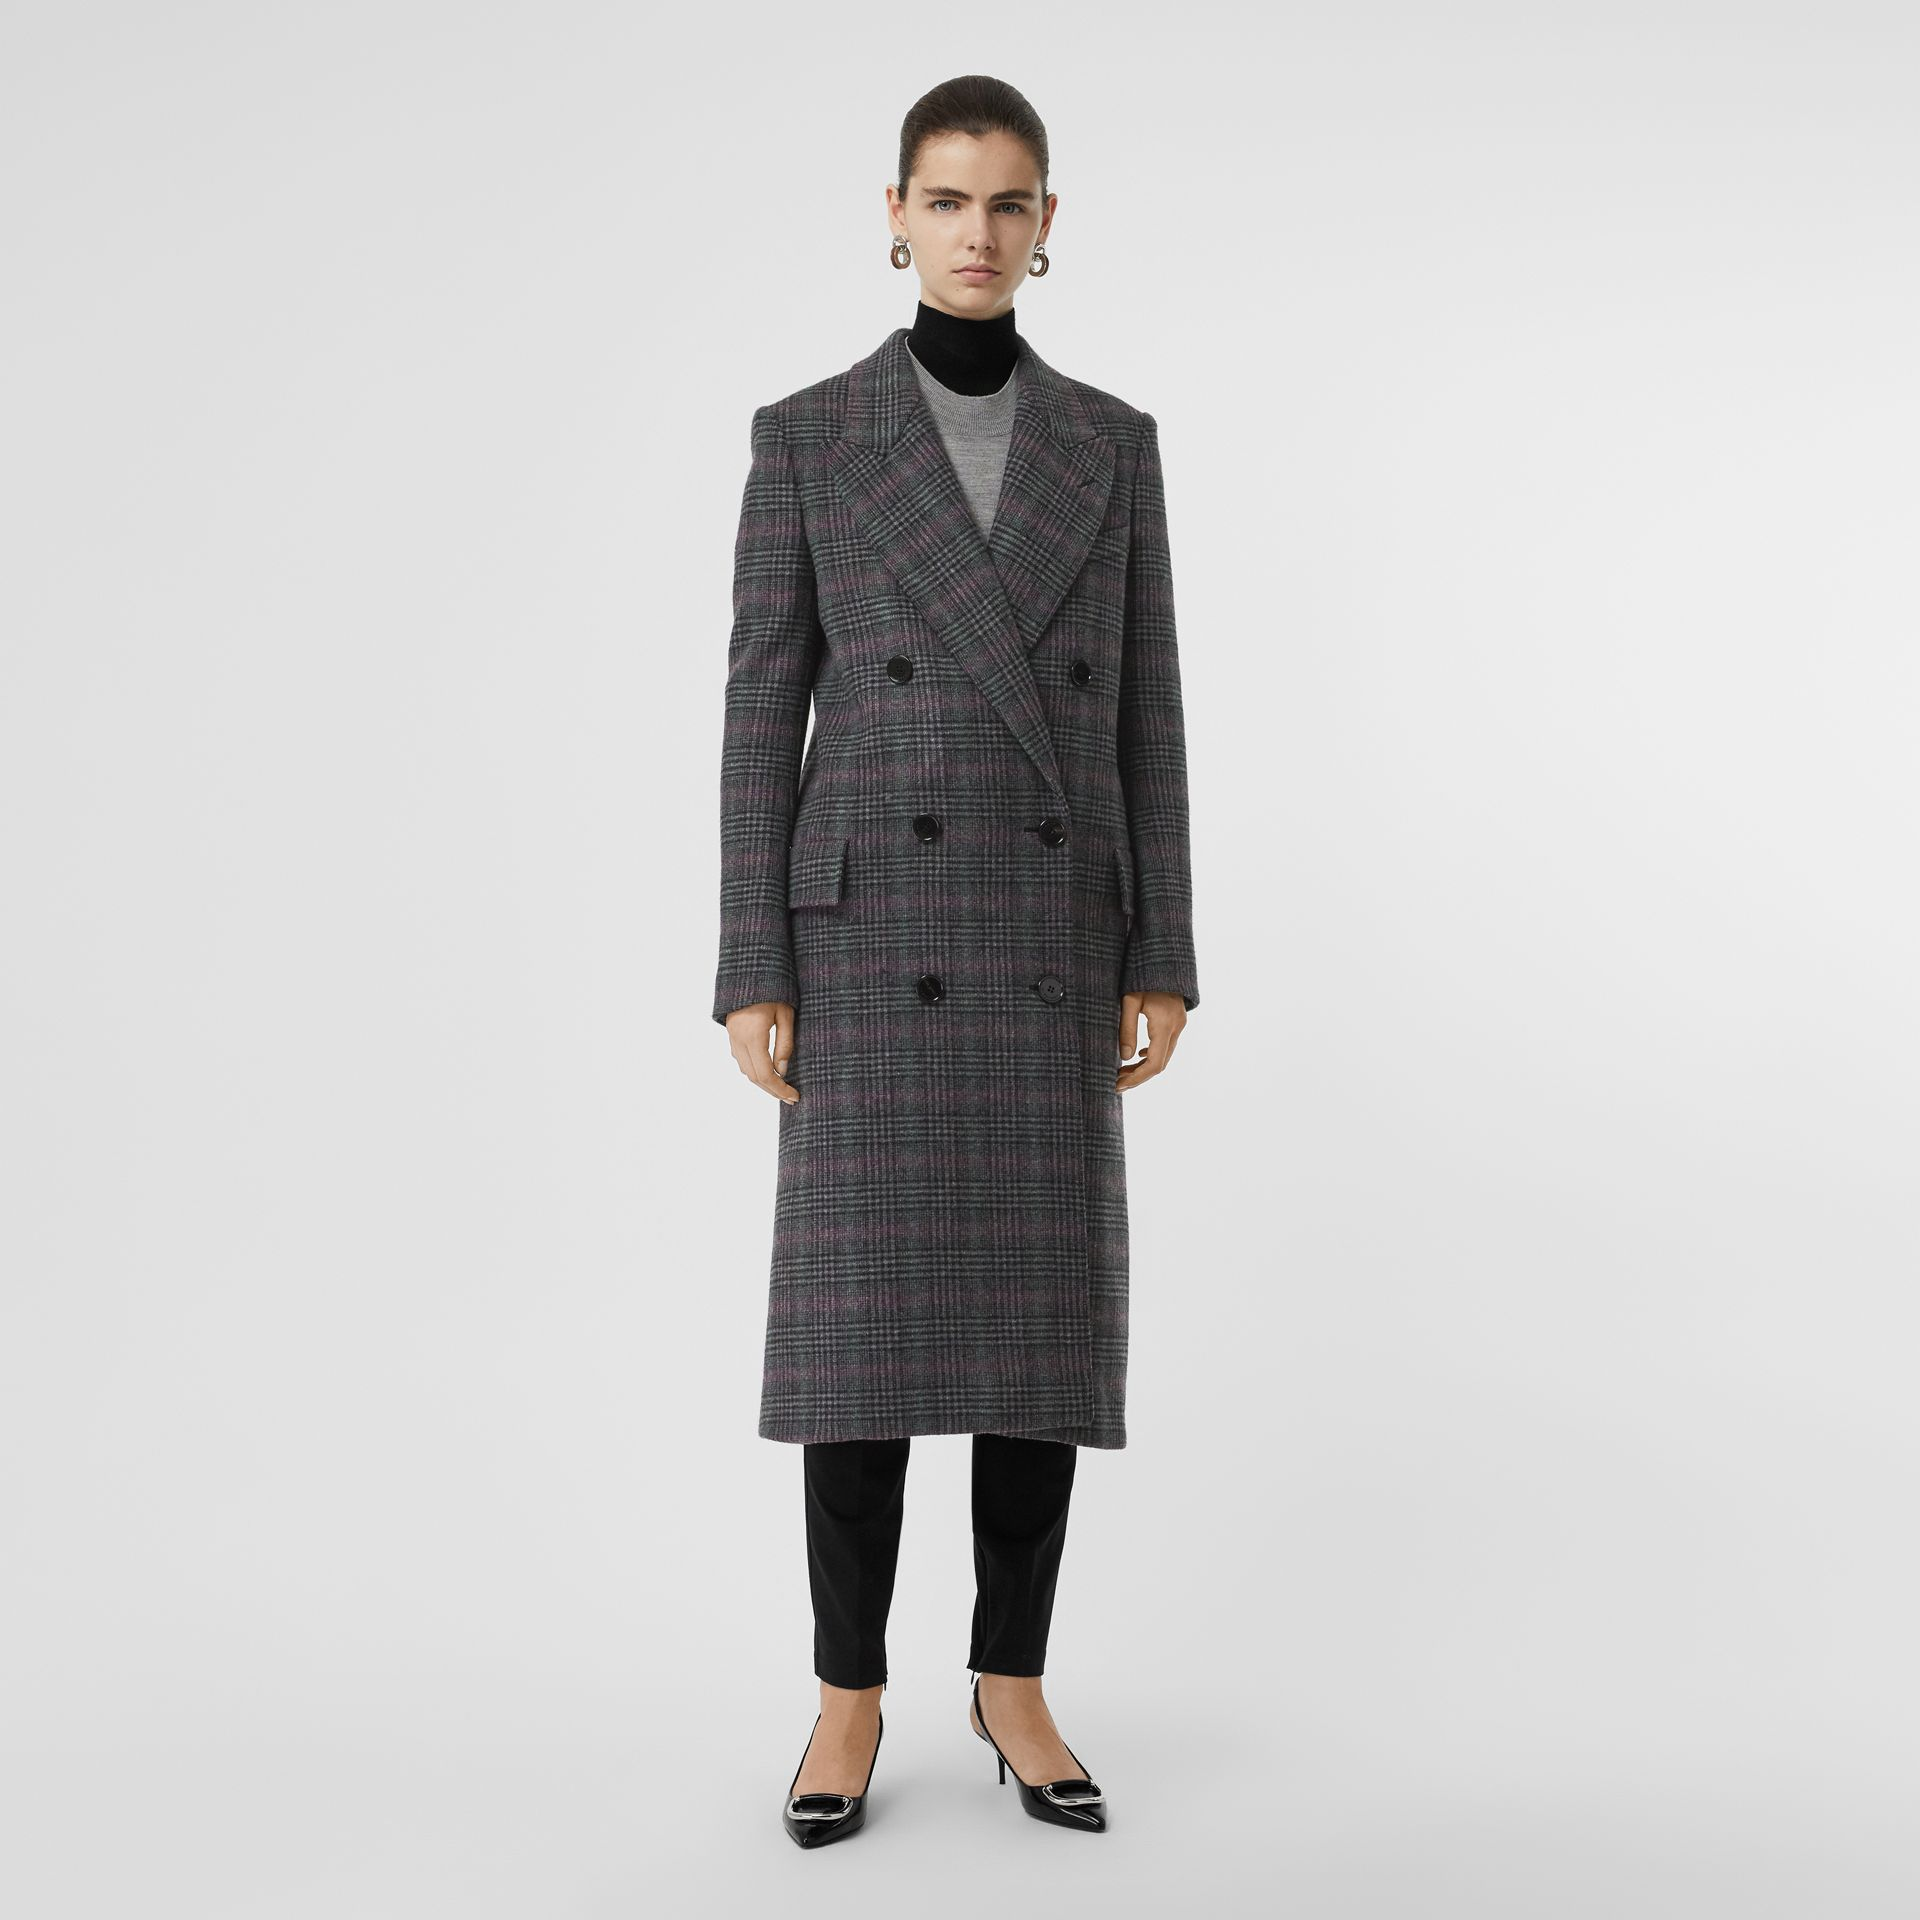 Prince of Wales Check Wool Tailored Coat in Charcoal - Women | Burberry United Kingdom - gallery image 5